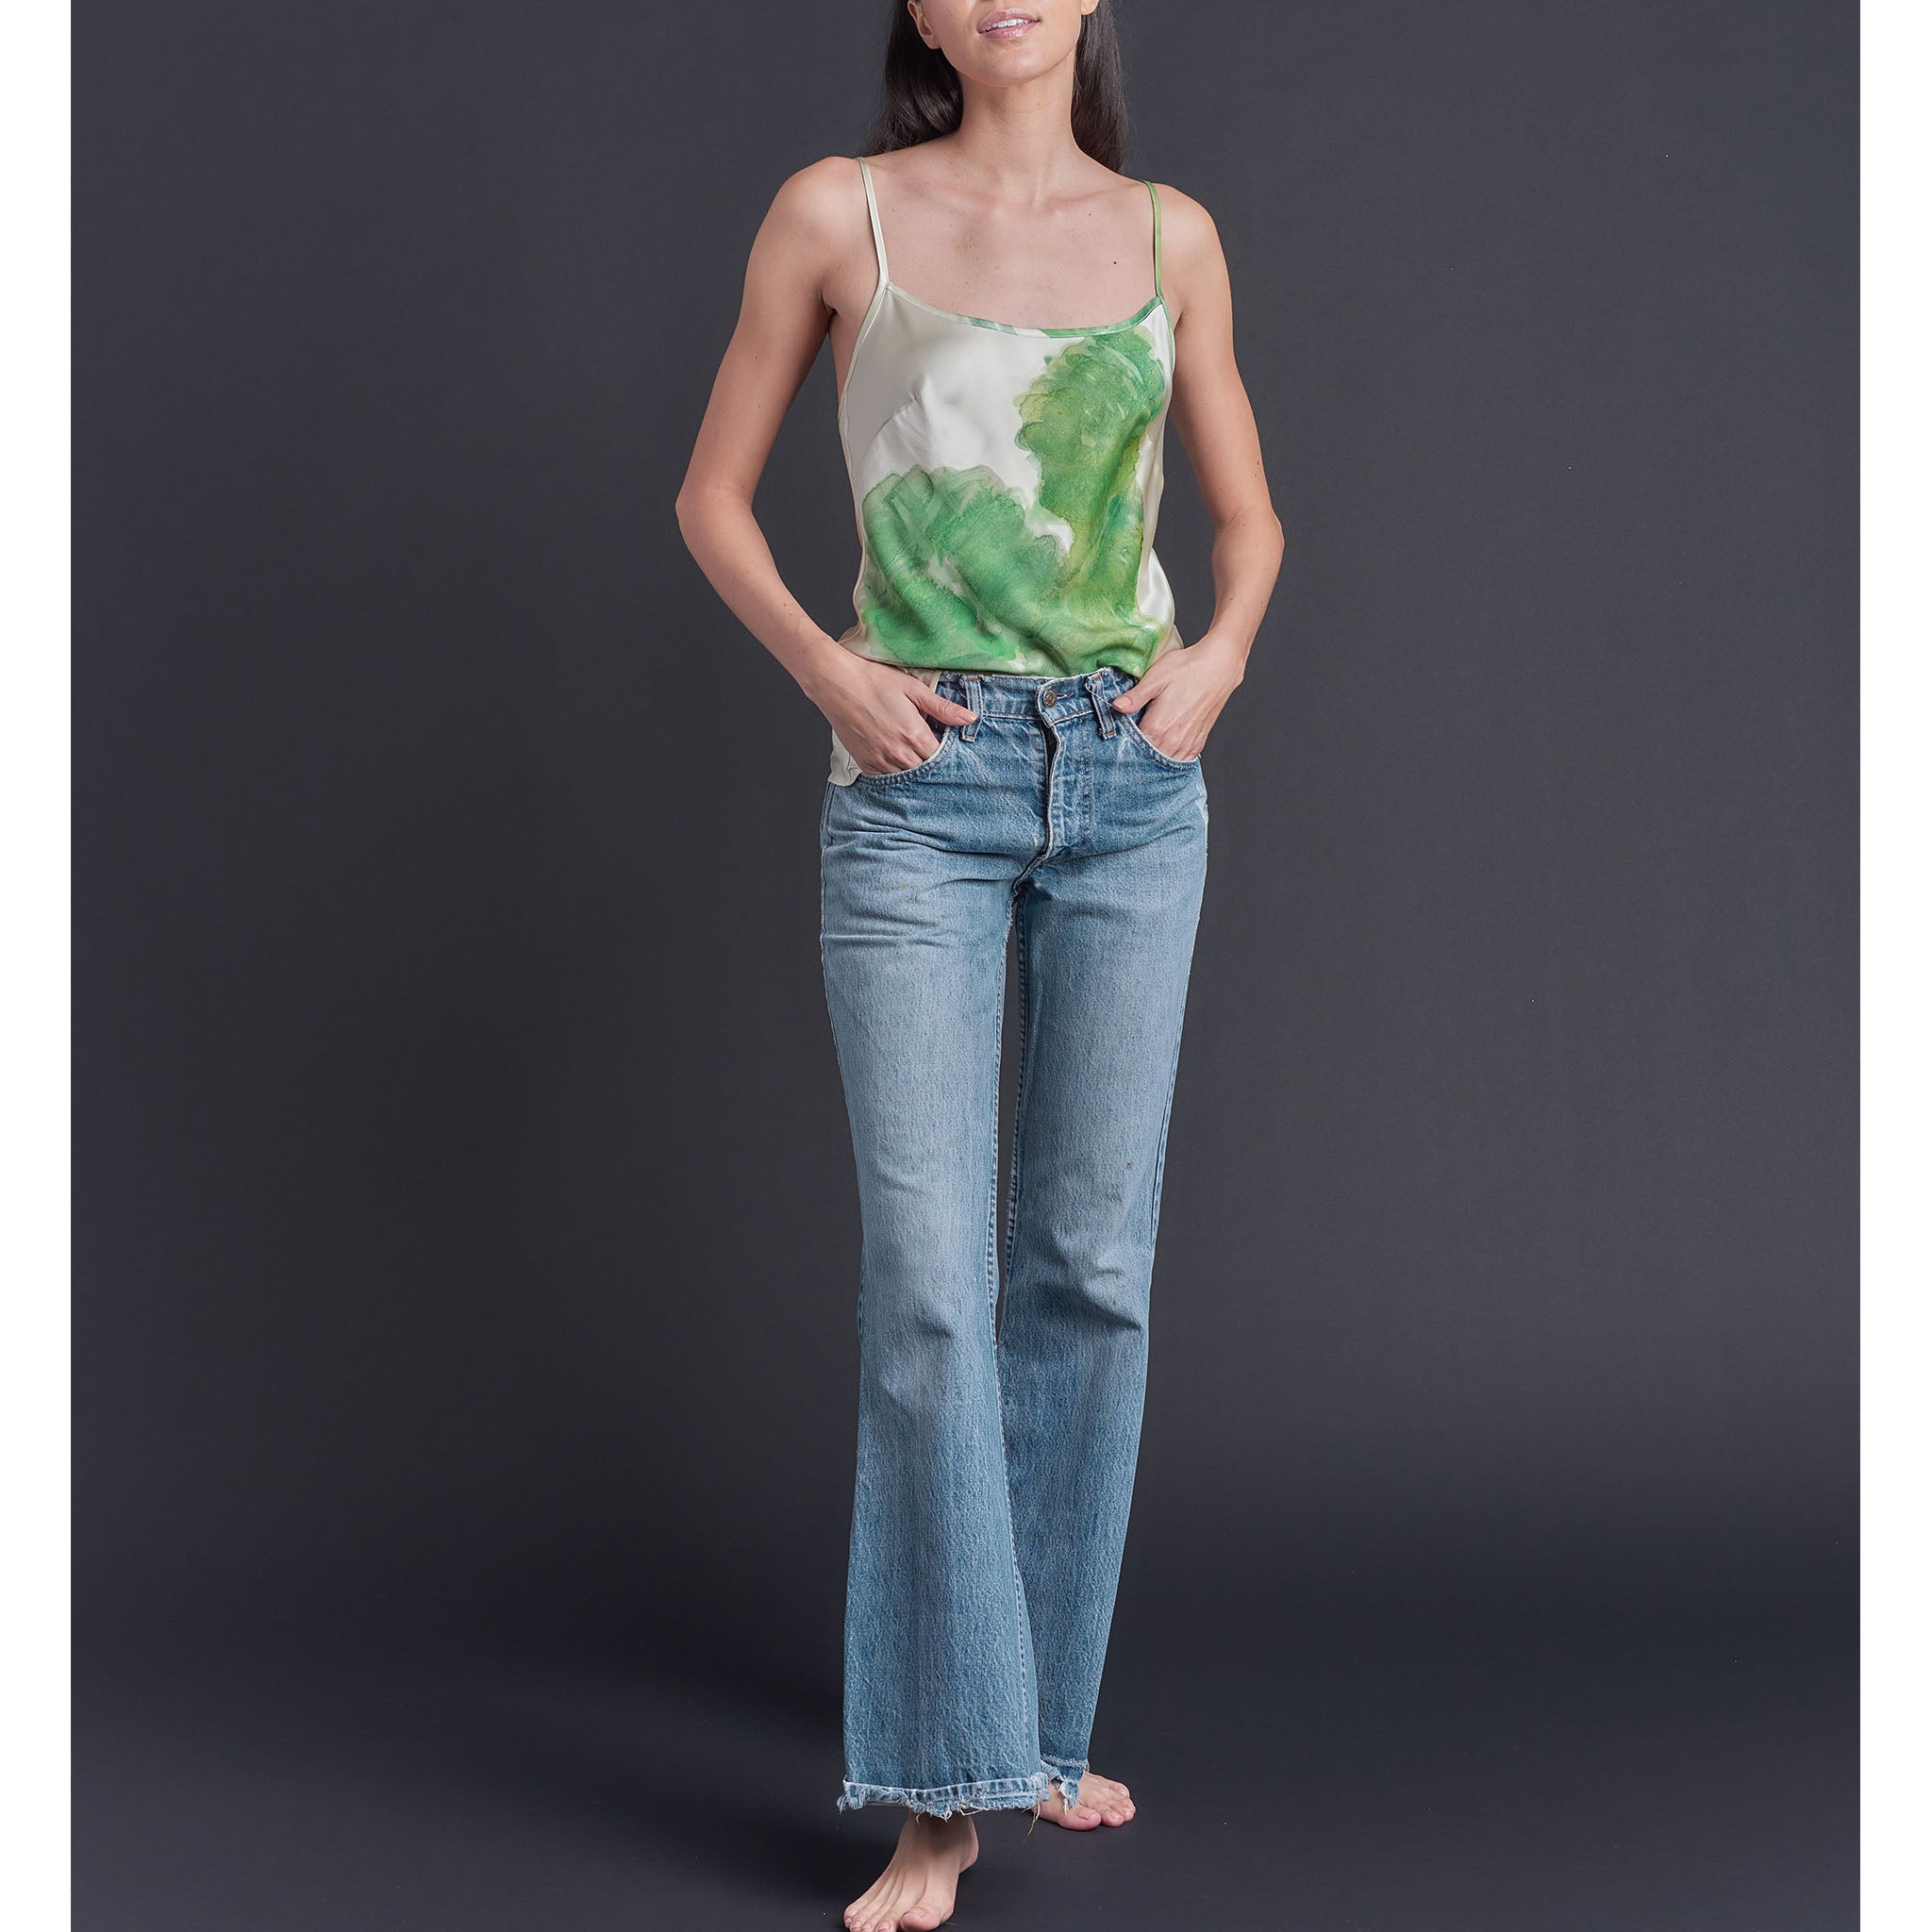 One of a Kind Olwen Bias Cut Camisole in Hand Painted Silk Charmeuse